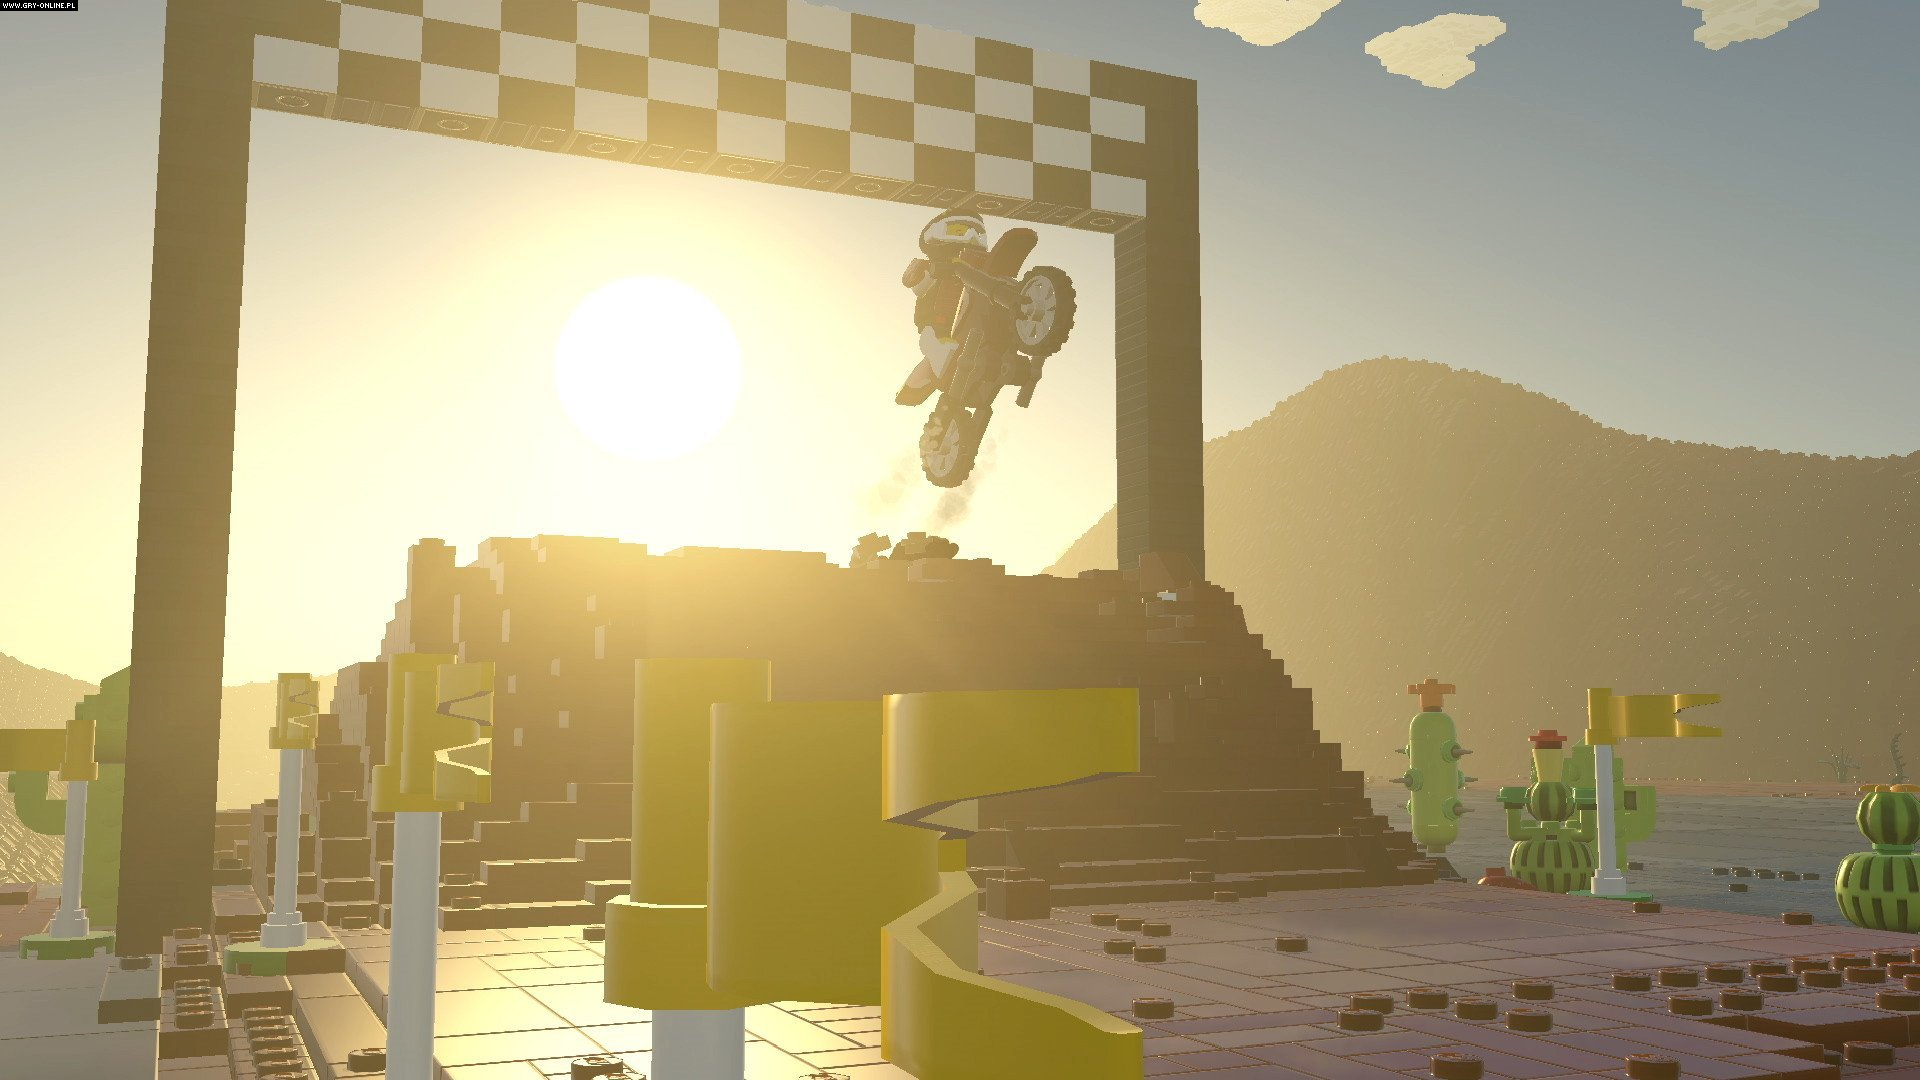 LEGO Worlds PC, PS4, XONE Games Image 9/26, Traveller's Tales, Warner Bros. Interactive Entertainment